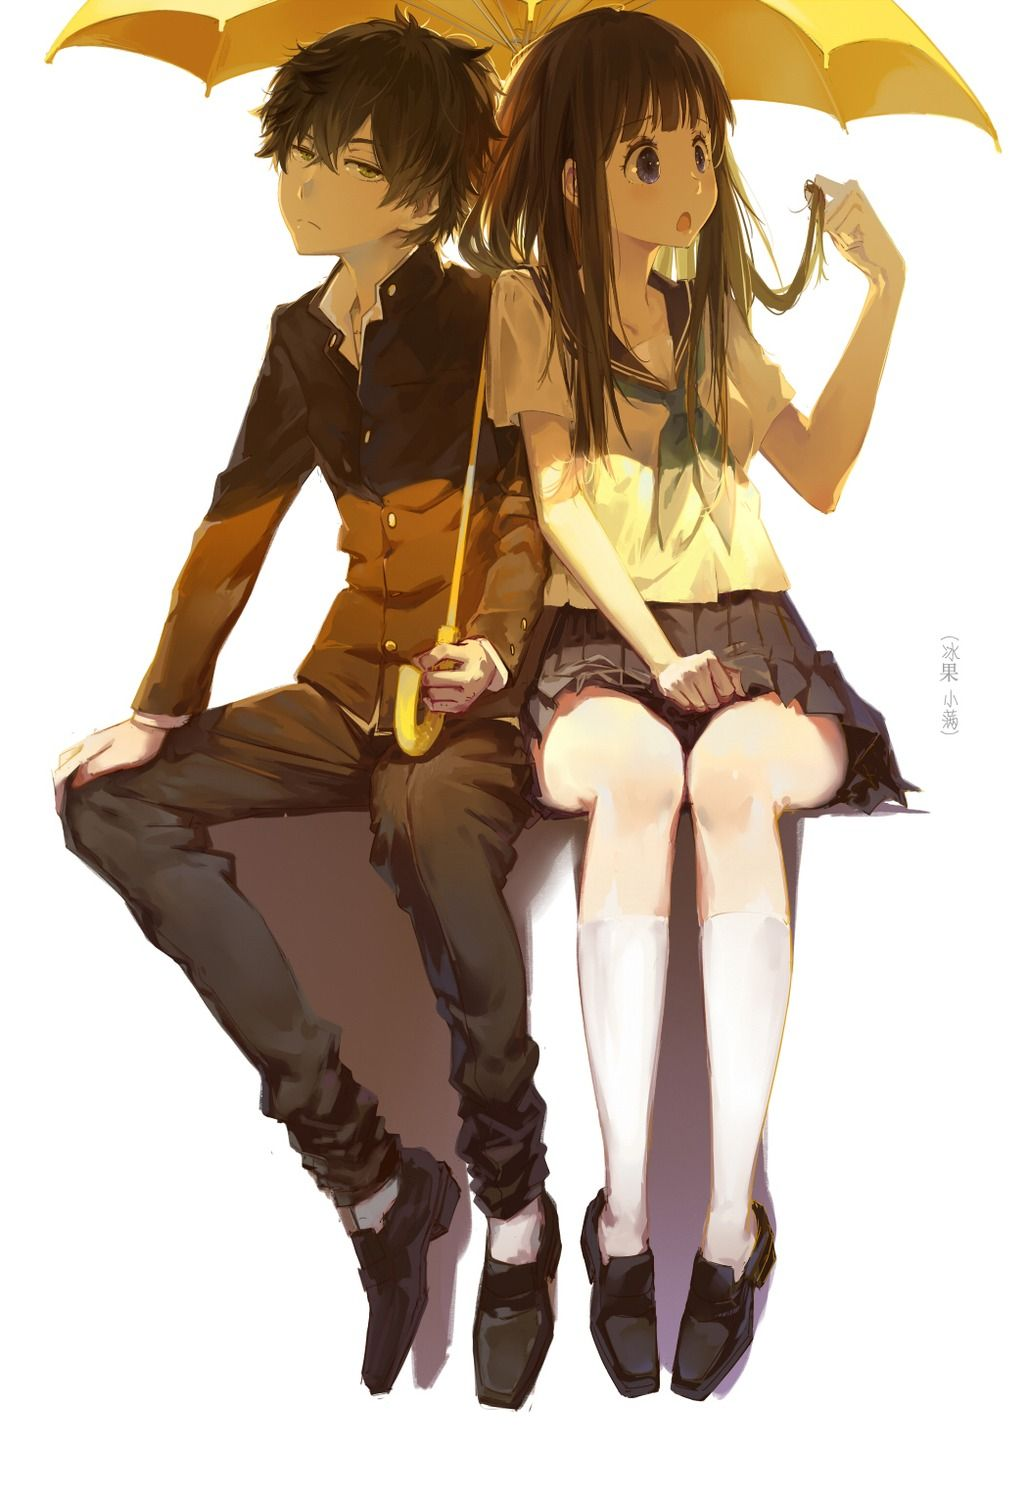 Pin by AlL Lovely oF anime on Anime(≧ ≦) ღ Hyouka, Anime